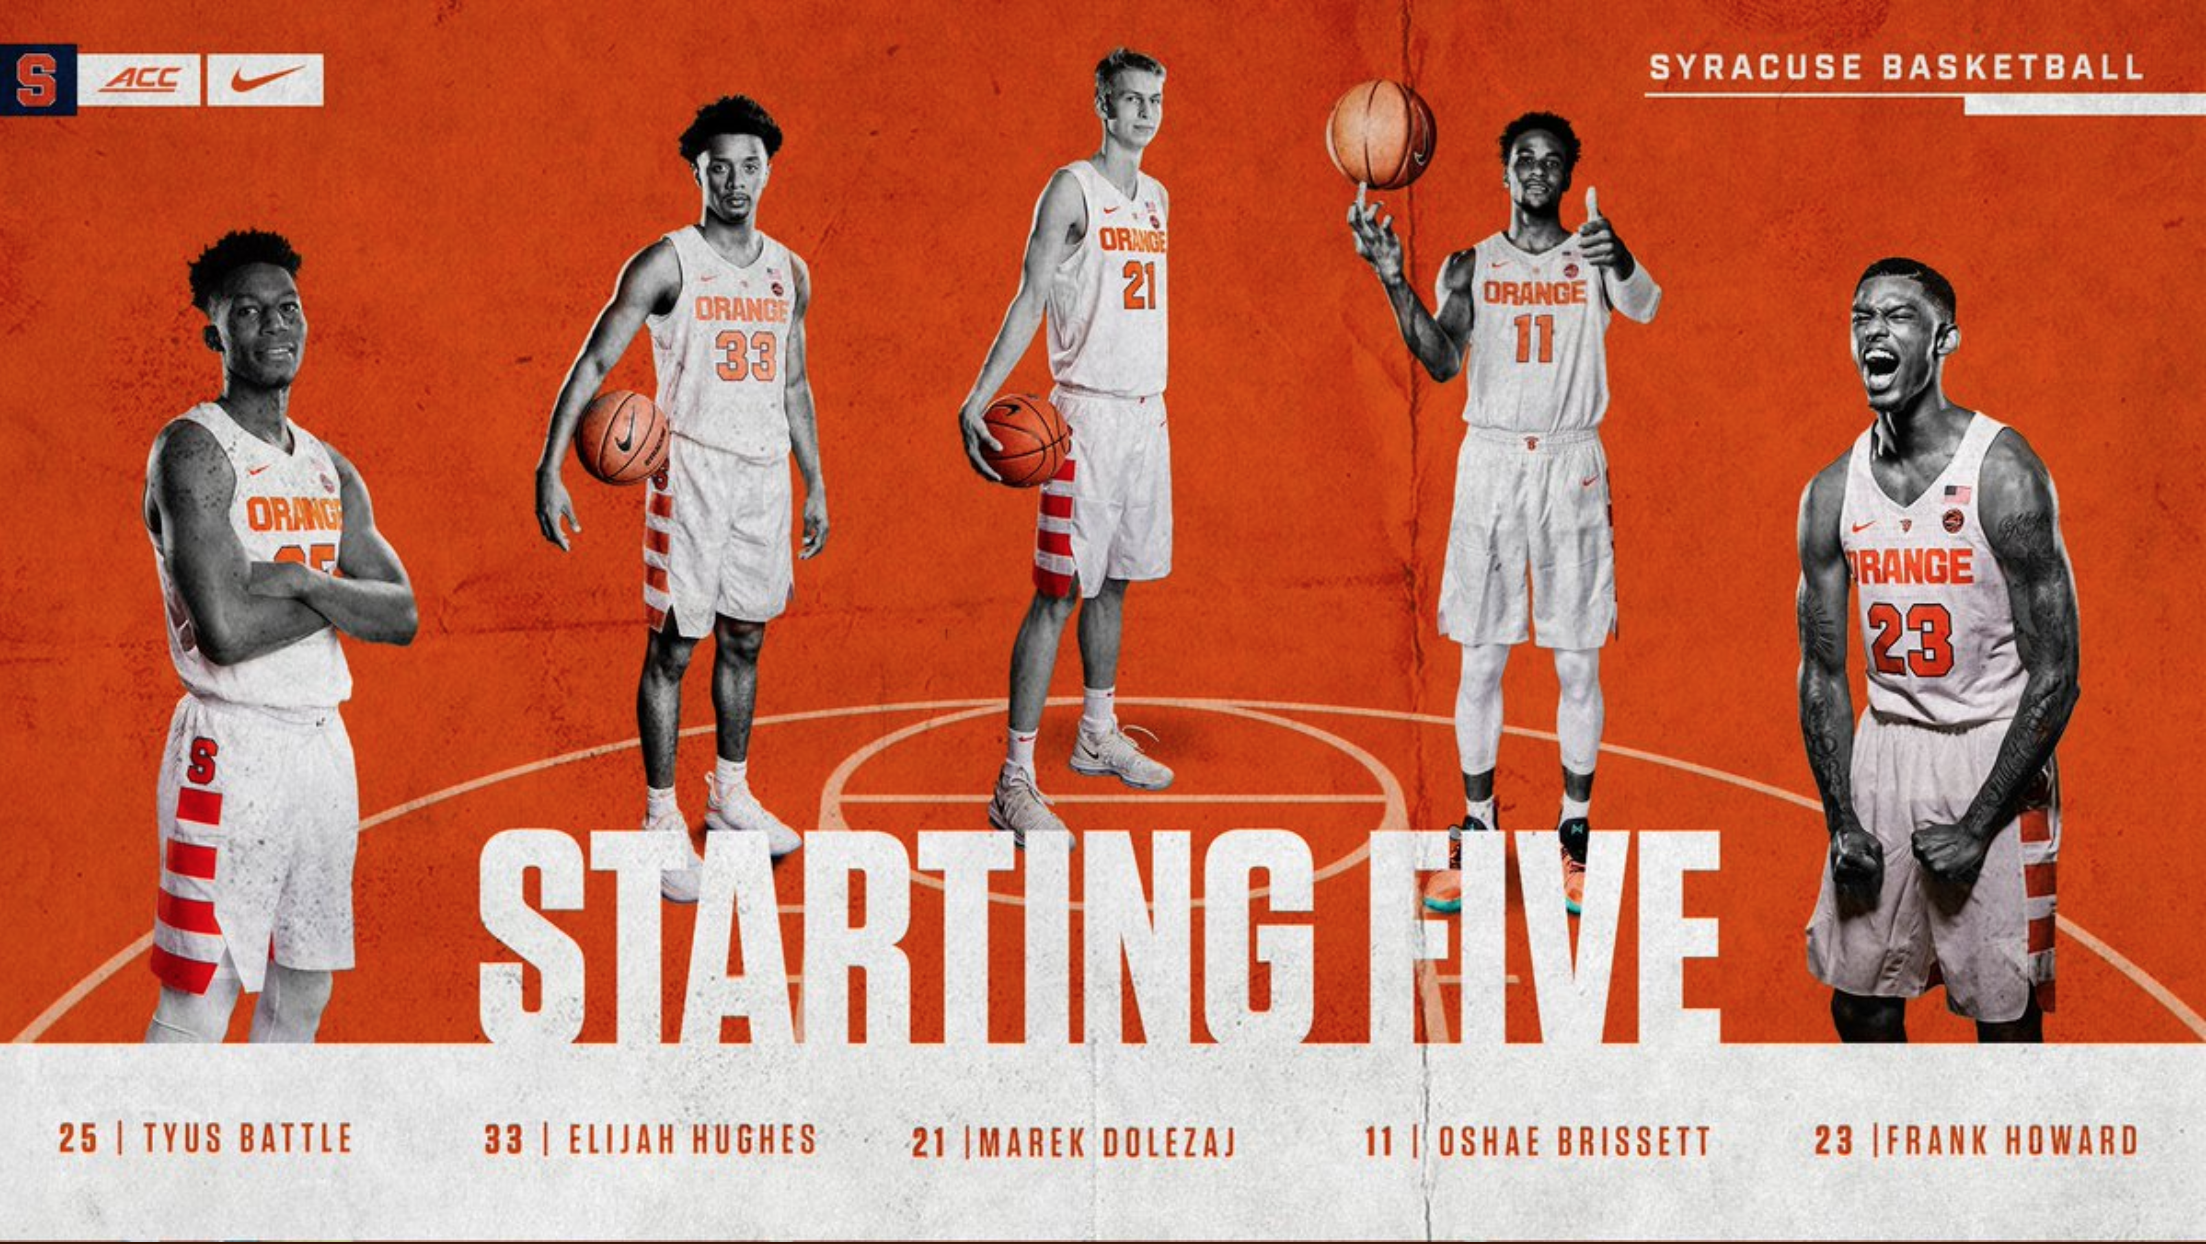 Syracuse Syracuse basketball, College sports graphics